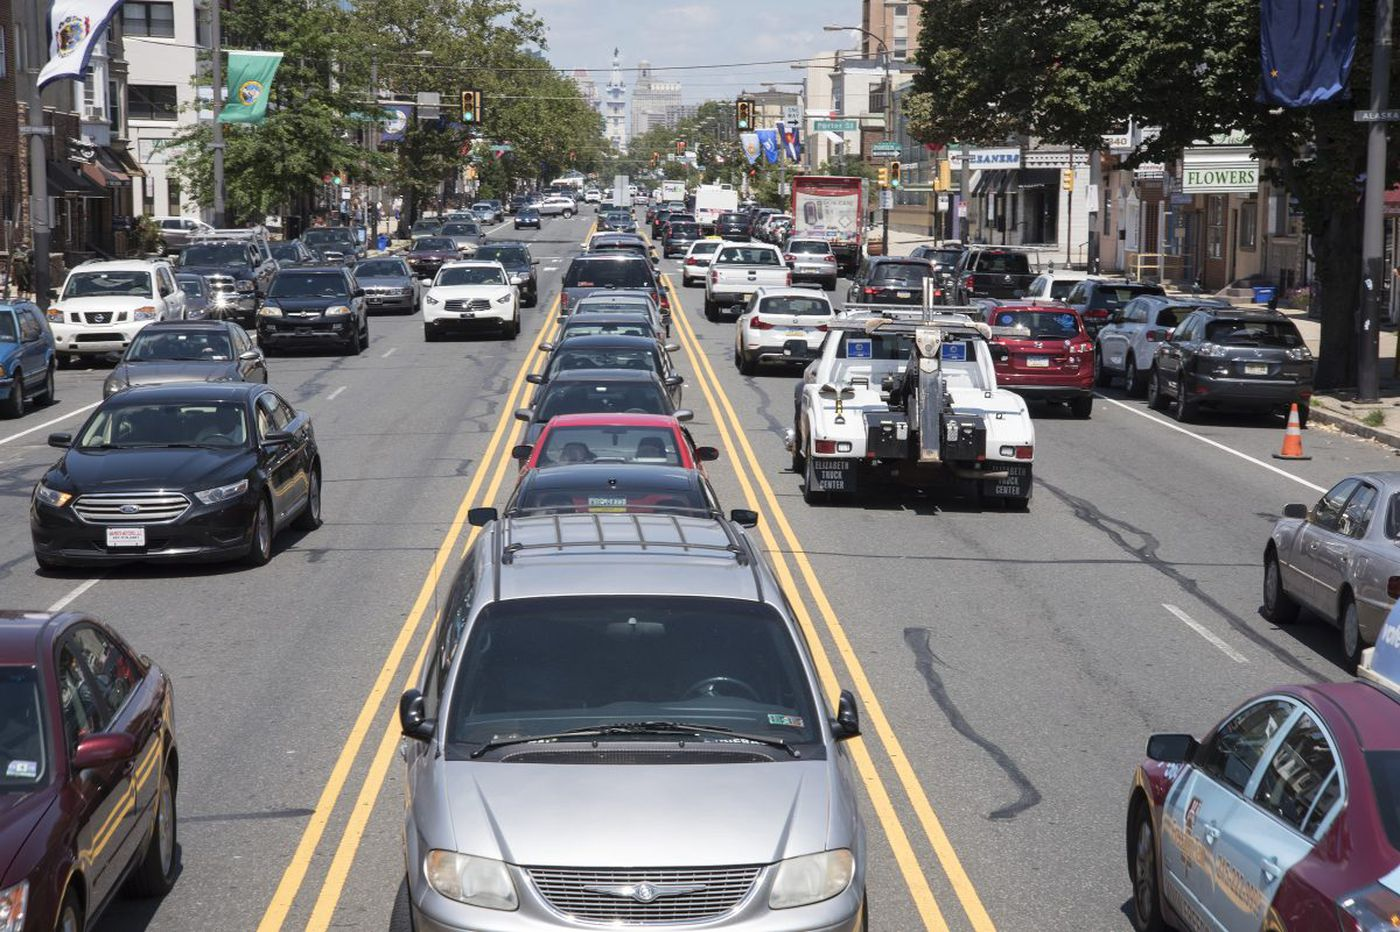 Median parking on South Broad Street is dangerous and must end ...